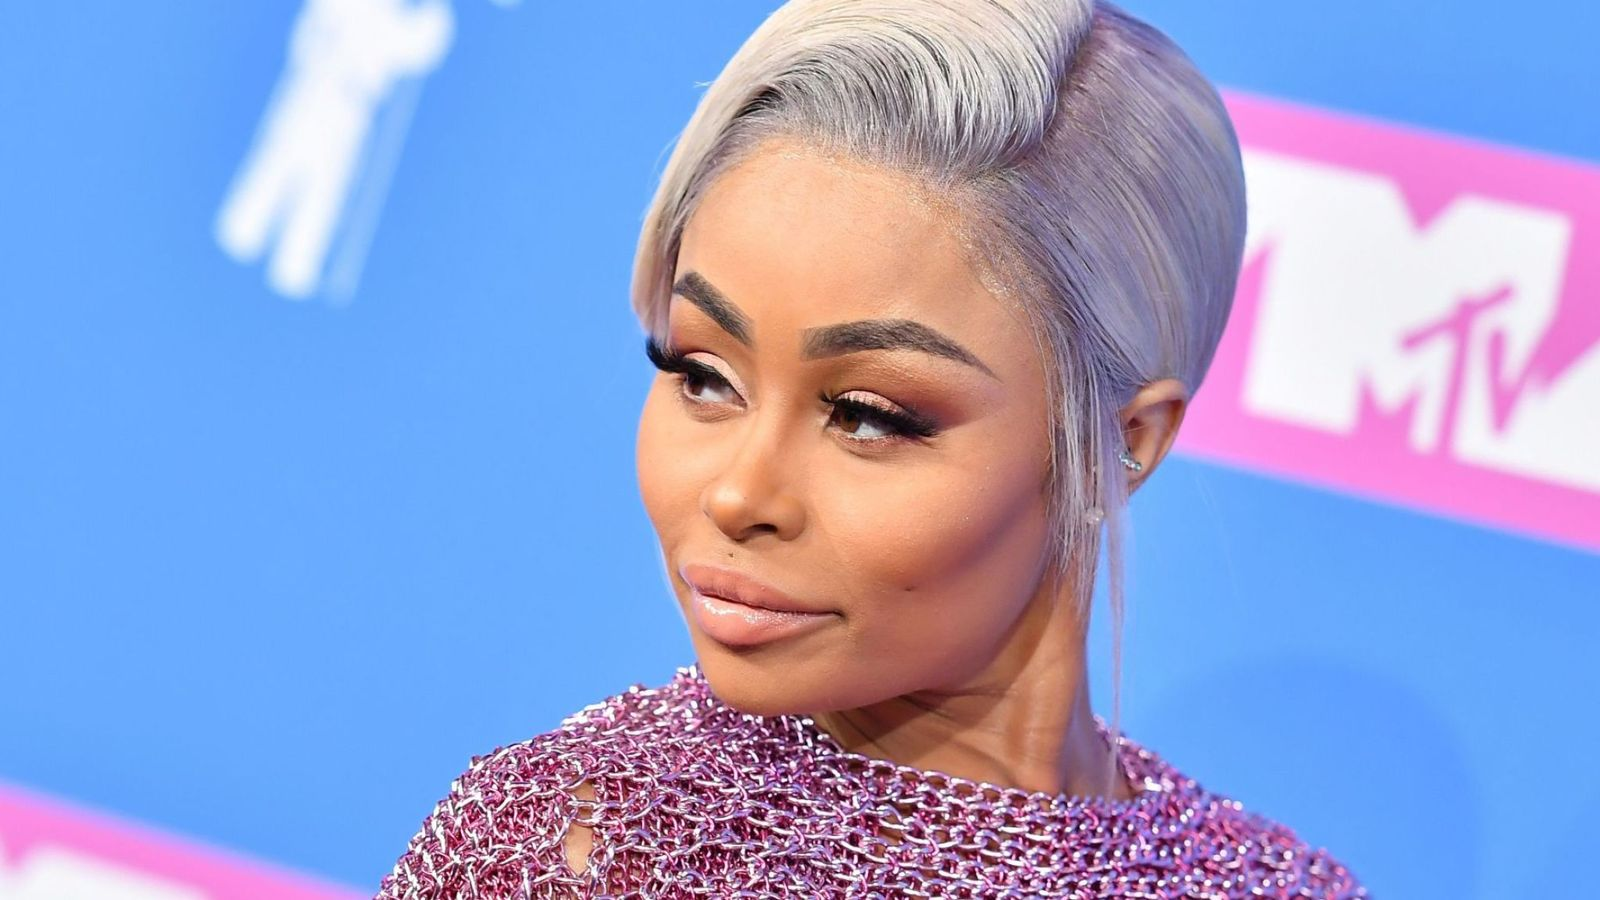 Blac Chyna Jokes About Pregnancy And People Call Her 'Sick' And 'Disgusting' - Check Out What She Did